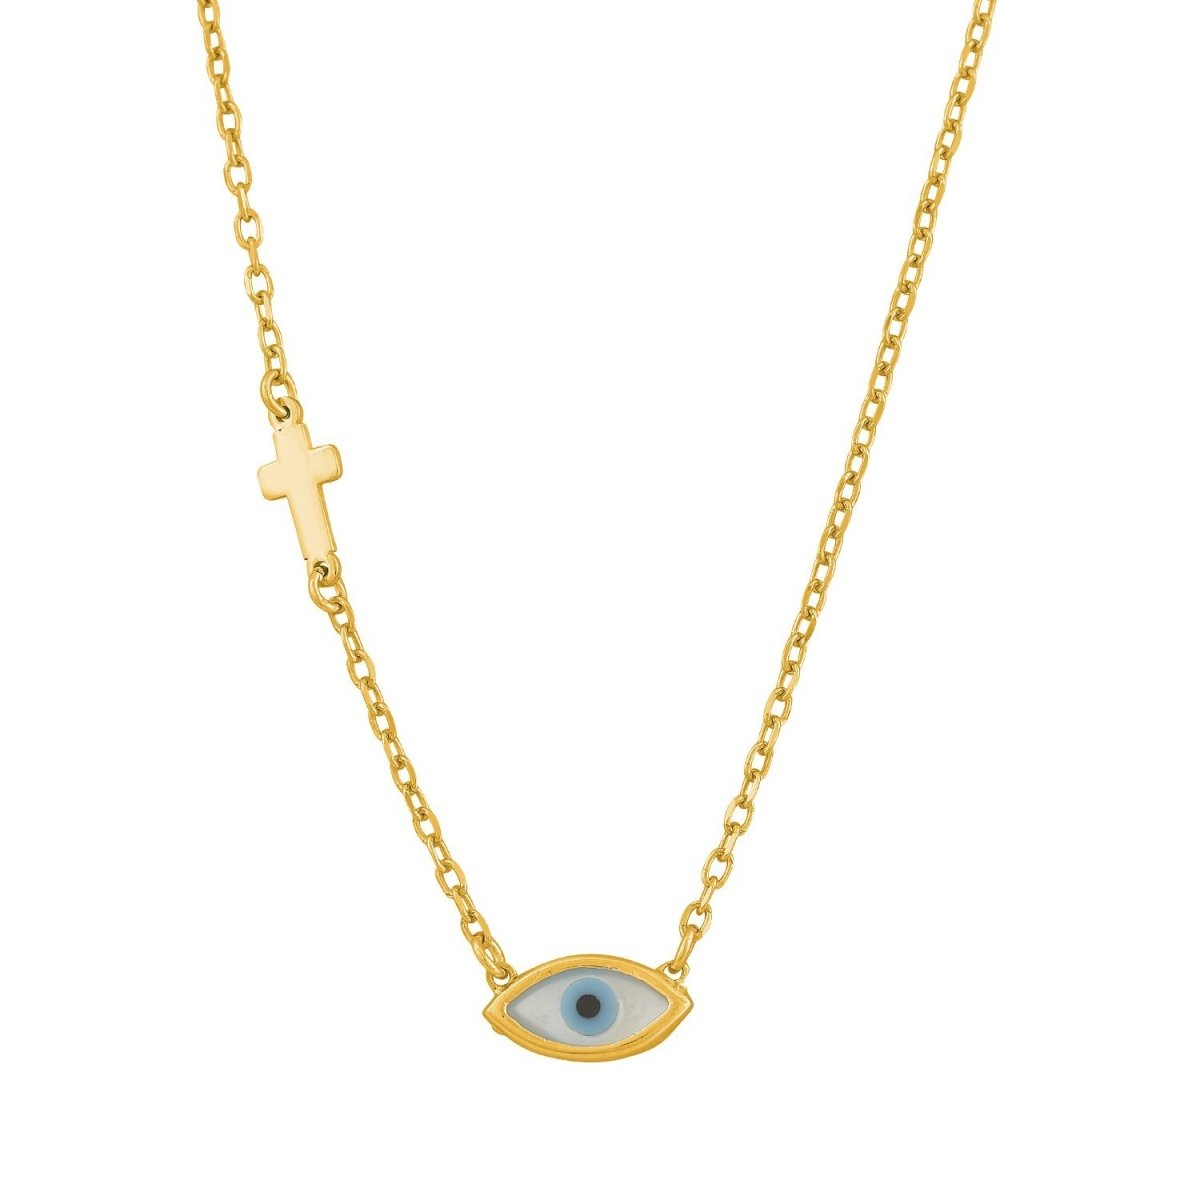 GM382G Gold Plated Silver Necklace - Goldy Jewelry Store